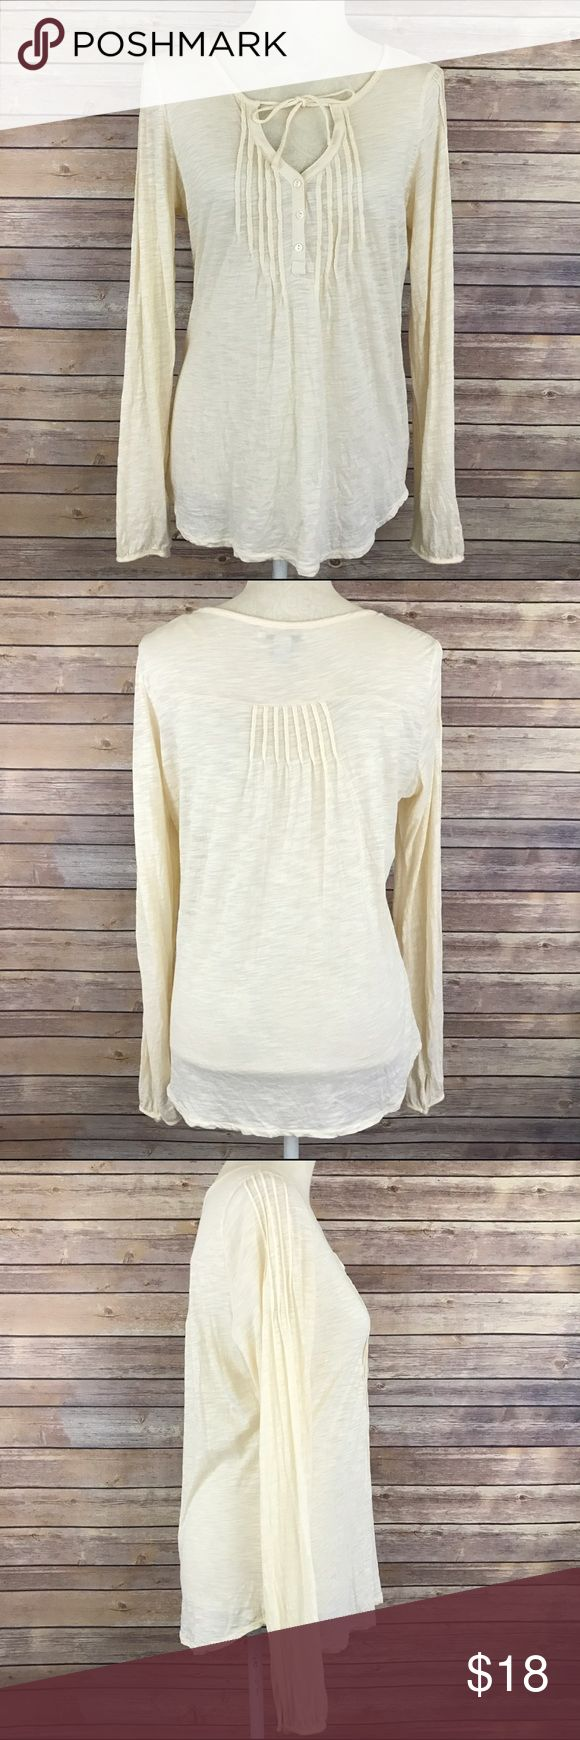 "Lucky Brand Knit Wear Button Down Cream Tee Medium Bust: 20.5"" Length: 26.5""  Condition: No Rips; No Stains  60% Cotton 40% Modal   📦I ship orders within 24 Hours! {Except Weekends}📦  🚫No Trades🚫No Holds🚫 Lucky Brand Tops Tees - Long Sleeve"